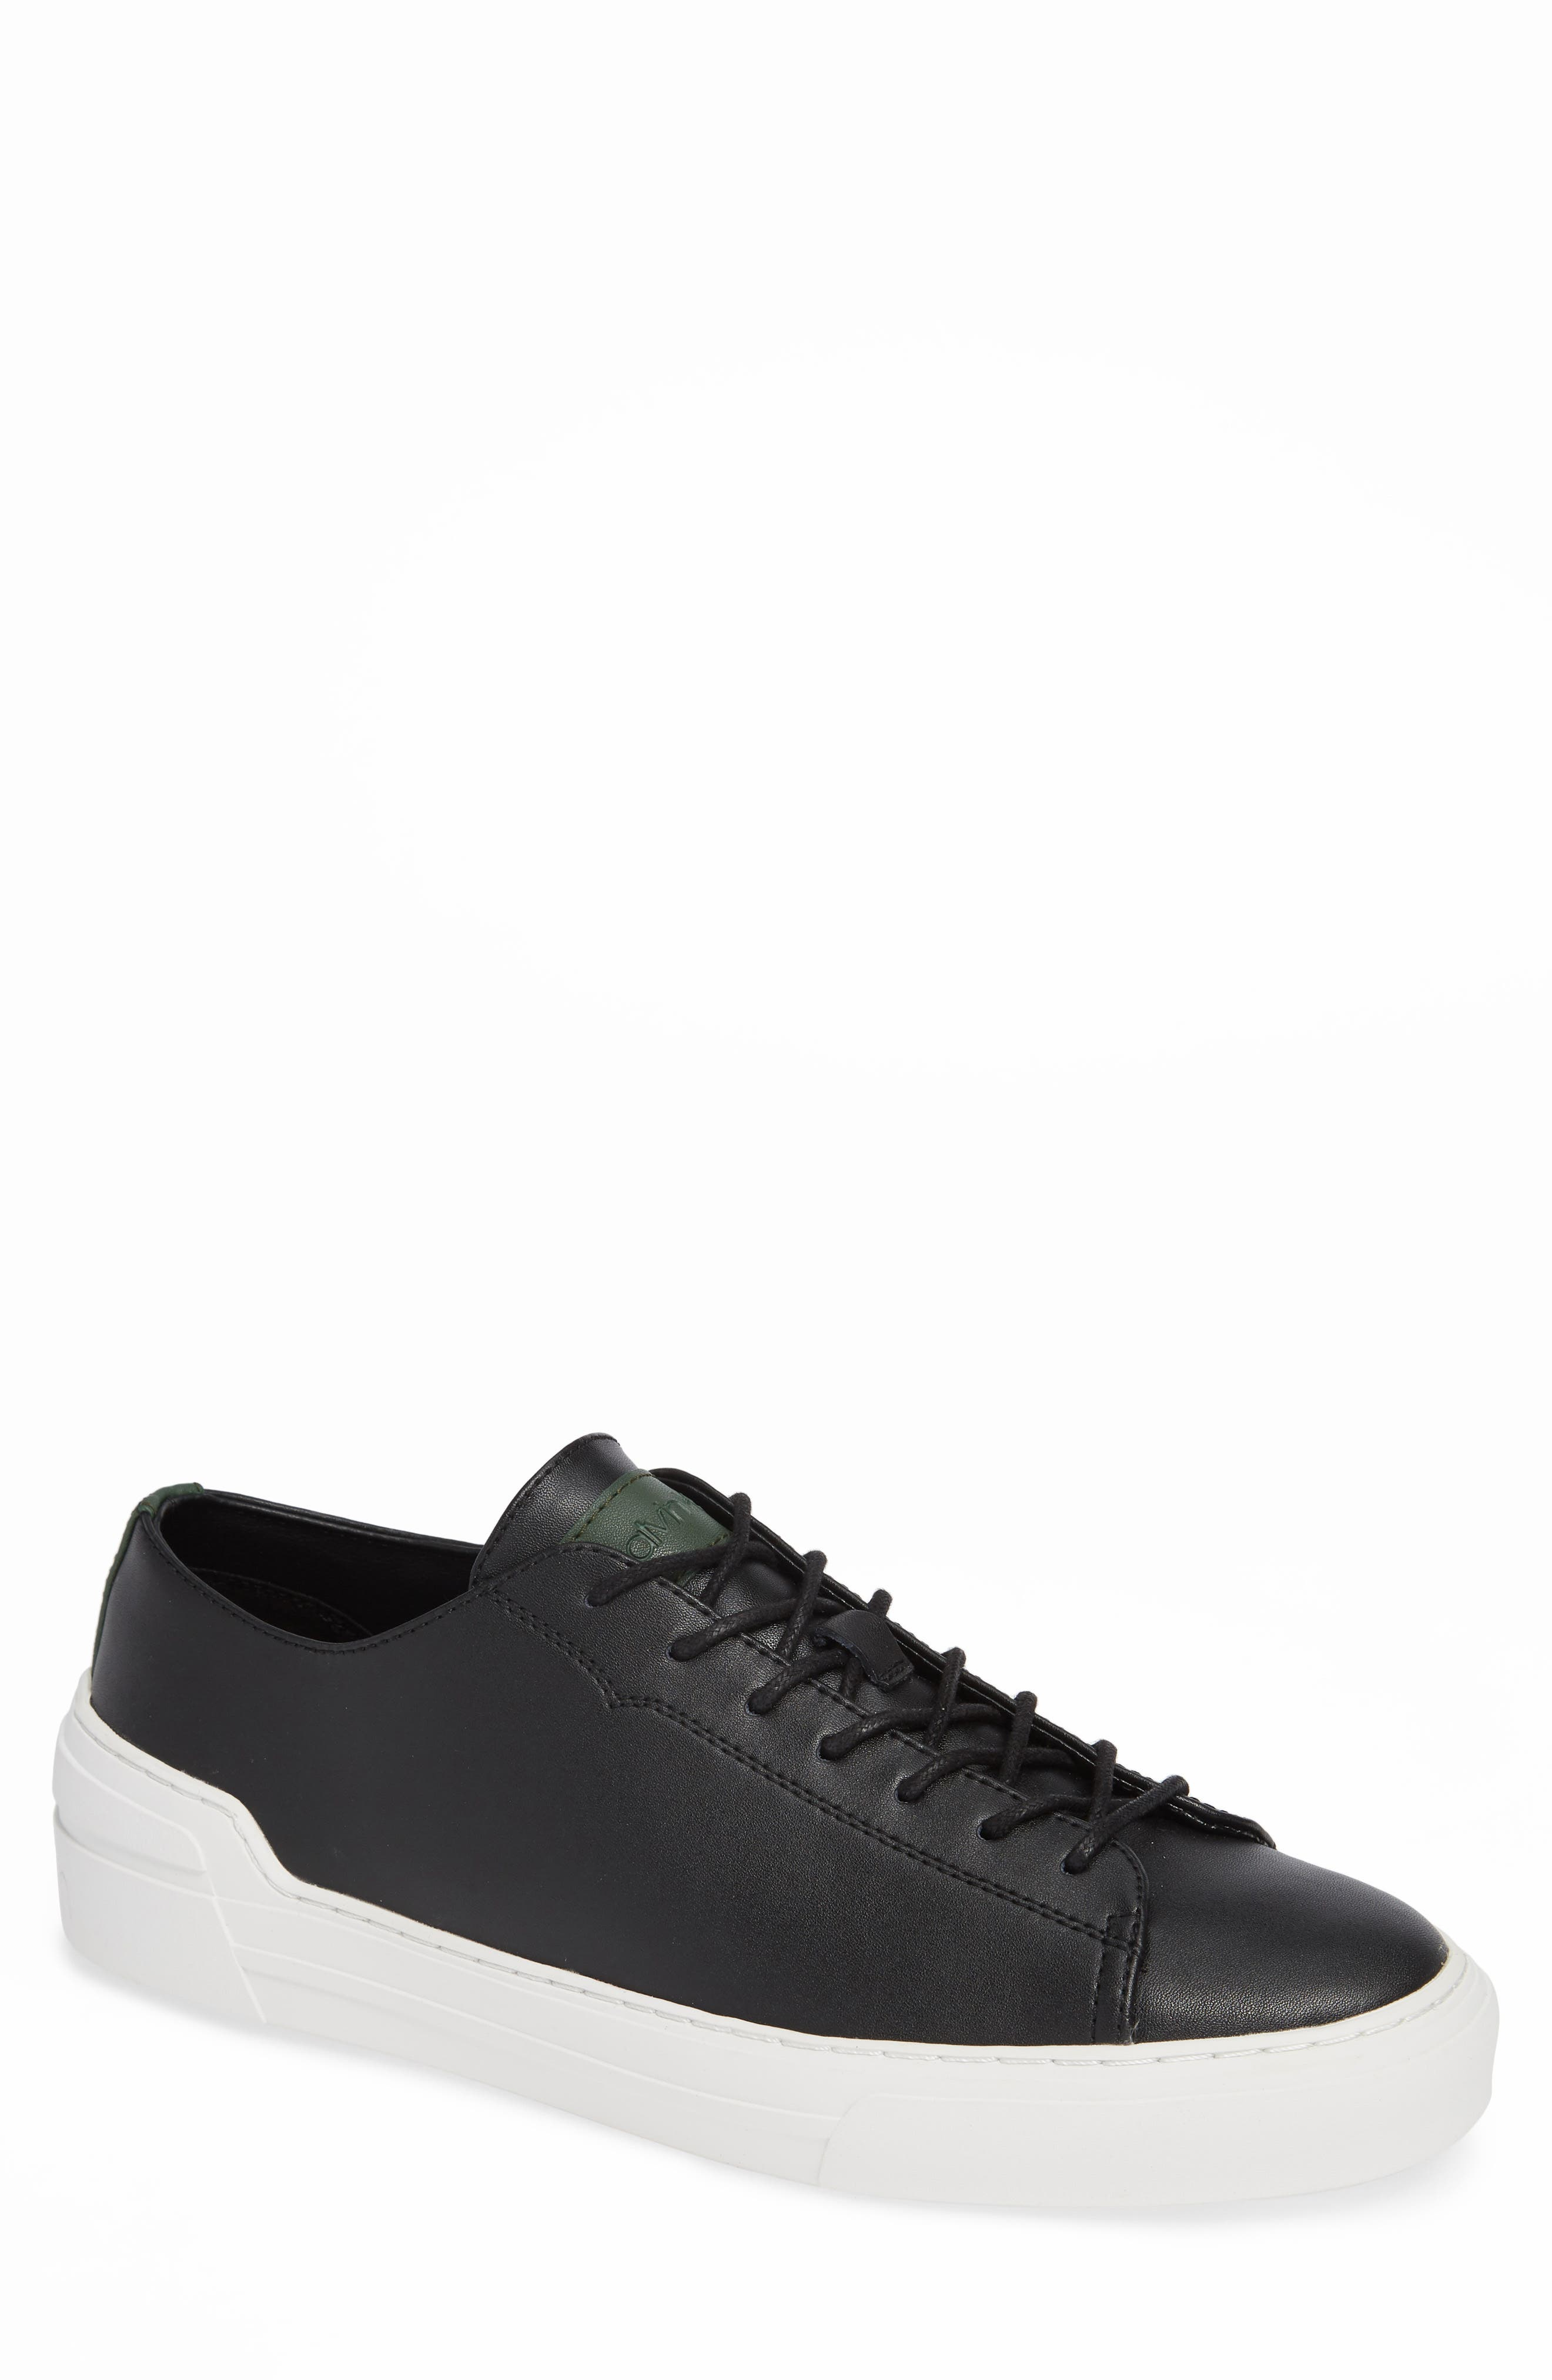 Octavian Low Top Sneaker,                             Main thumbnail 1, color,                             BLACK LEATHER